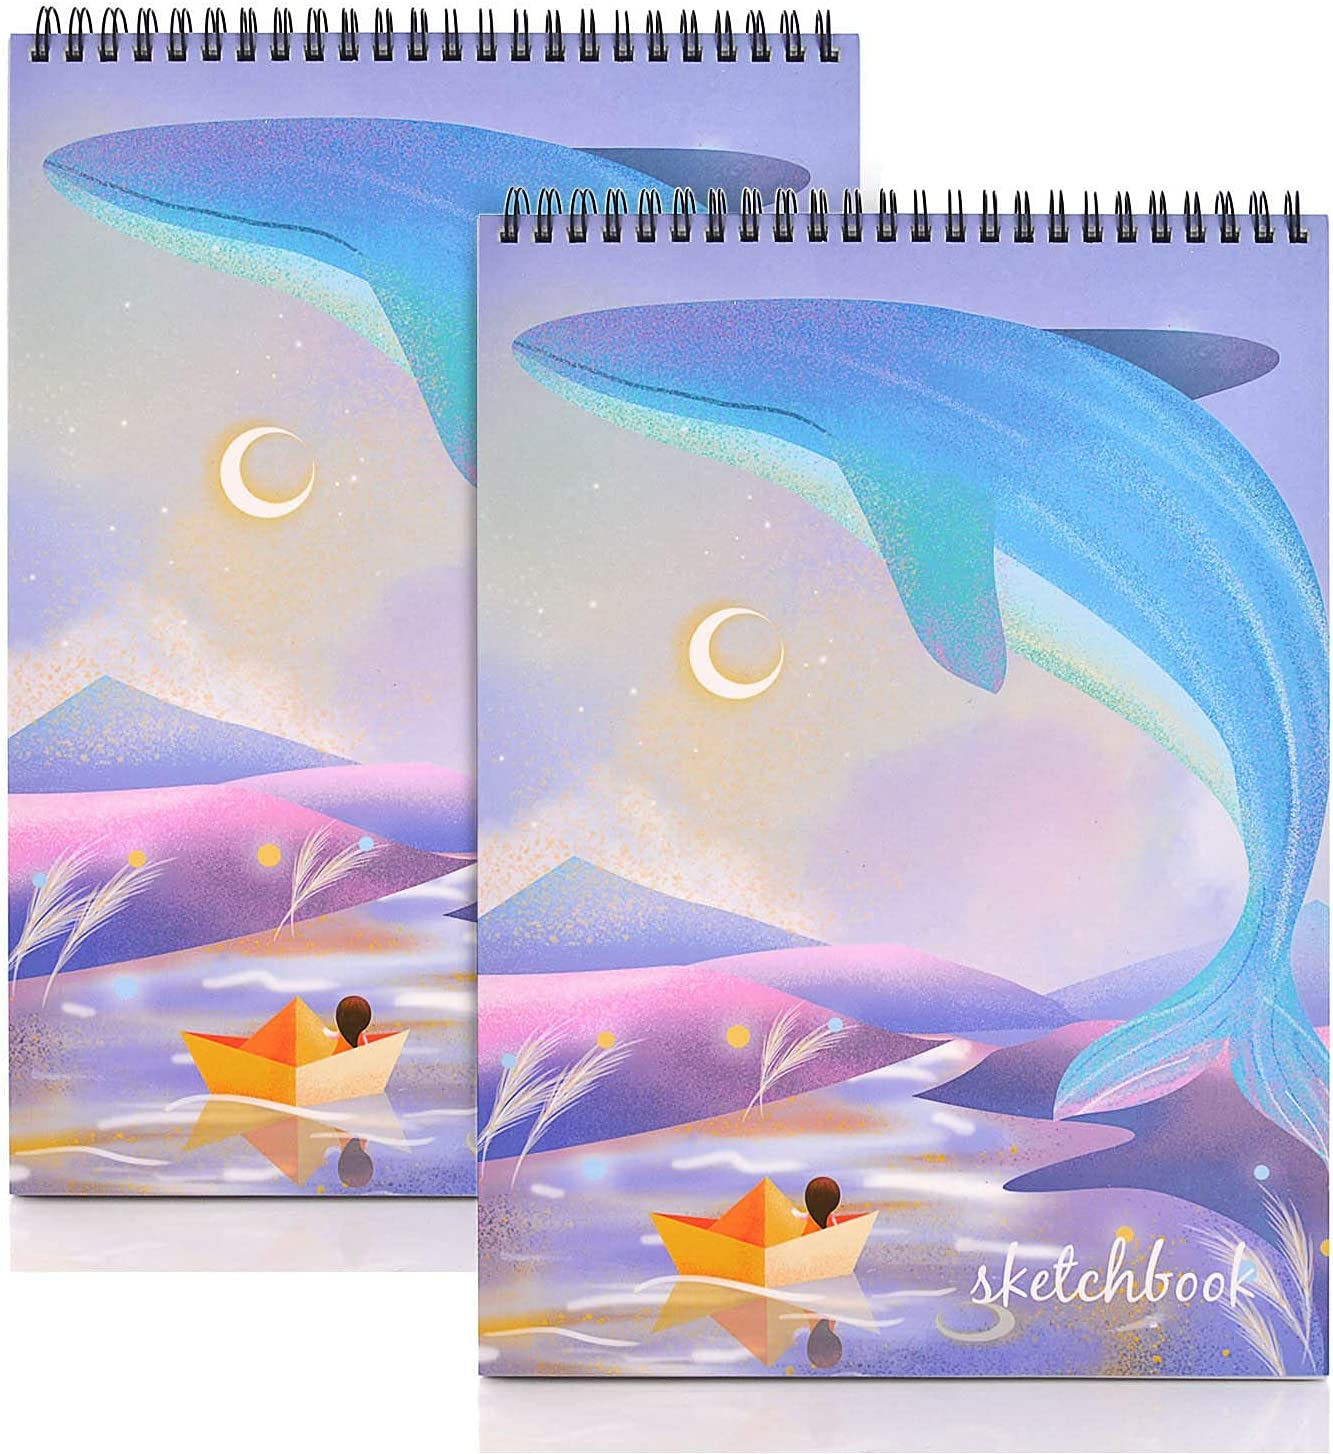 """MEMX 8""""X11.5"""" Sketch Book 2 Pages High quality Pack Spi 110gsm 100 Ranking integrated 1st place"""